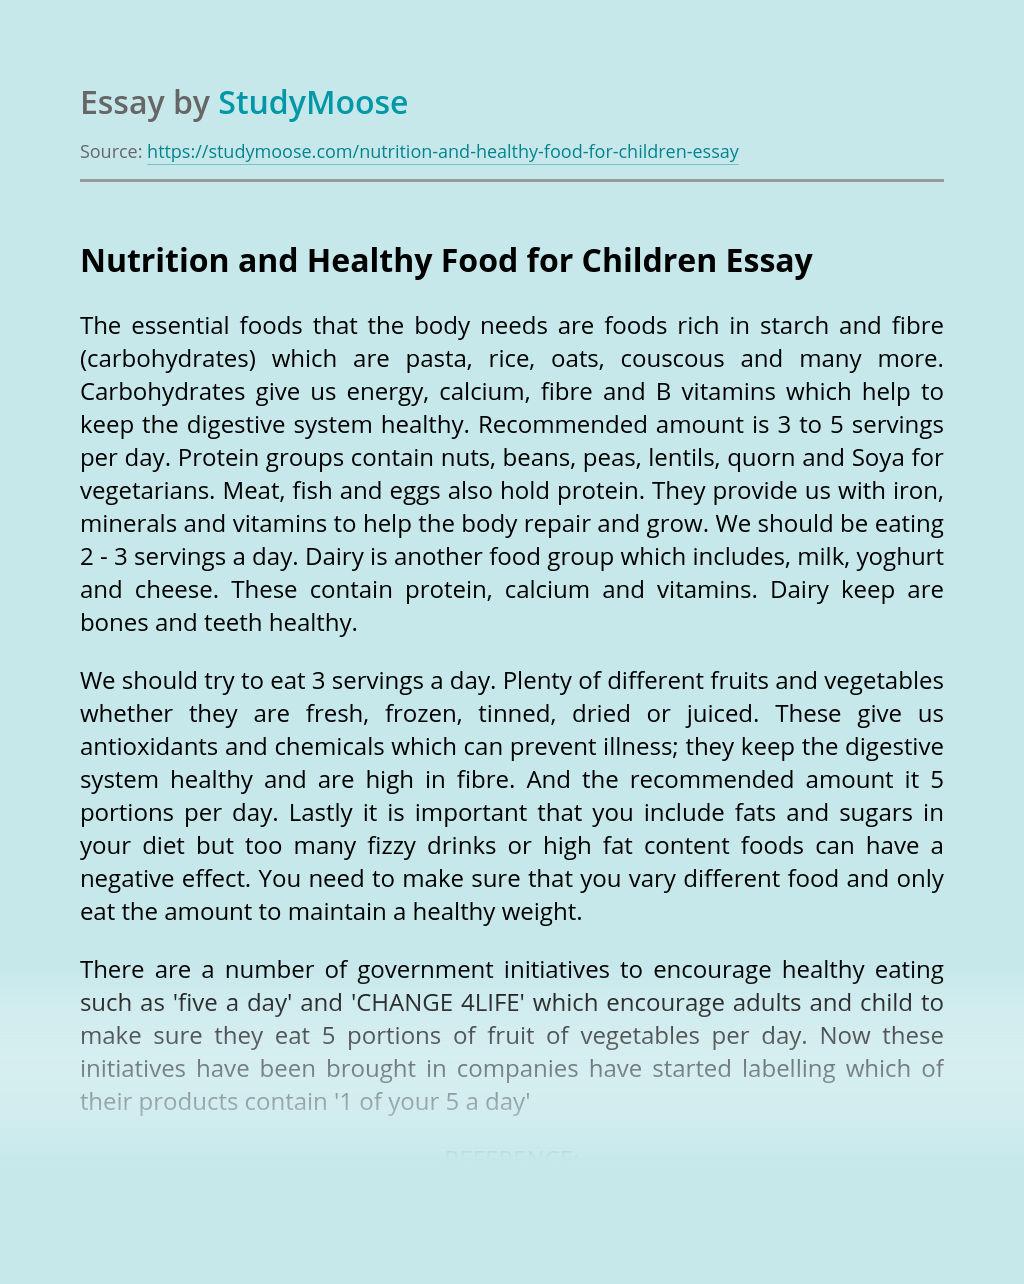 Nutrition and Healthy Food for Children